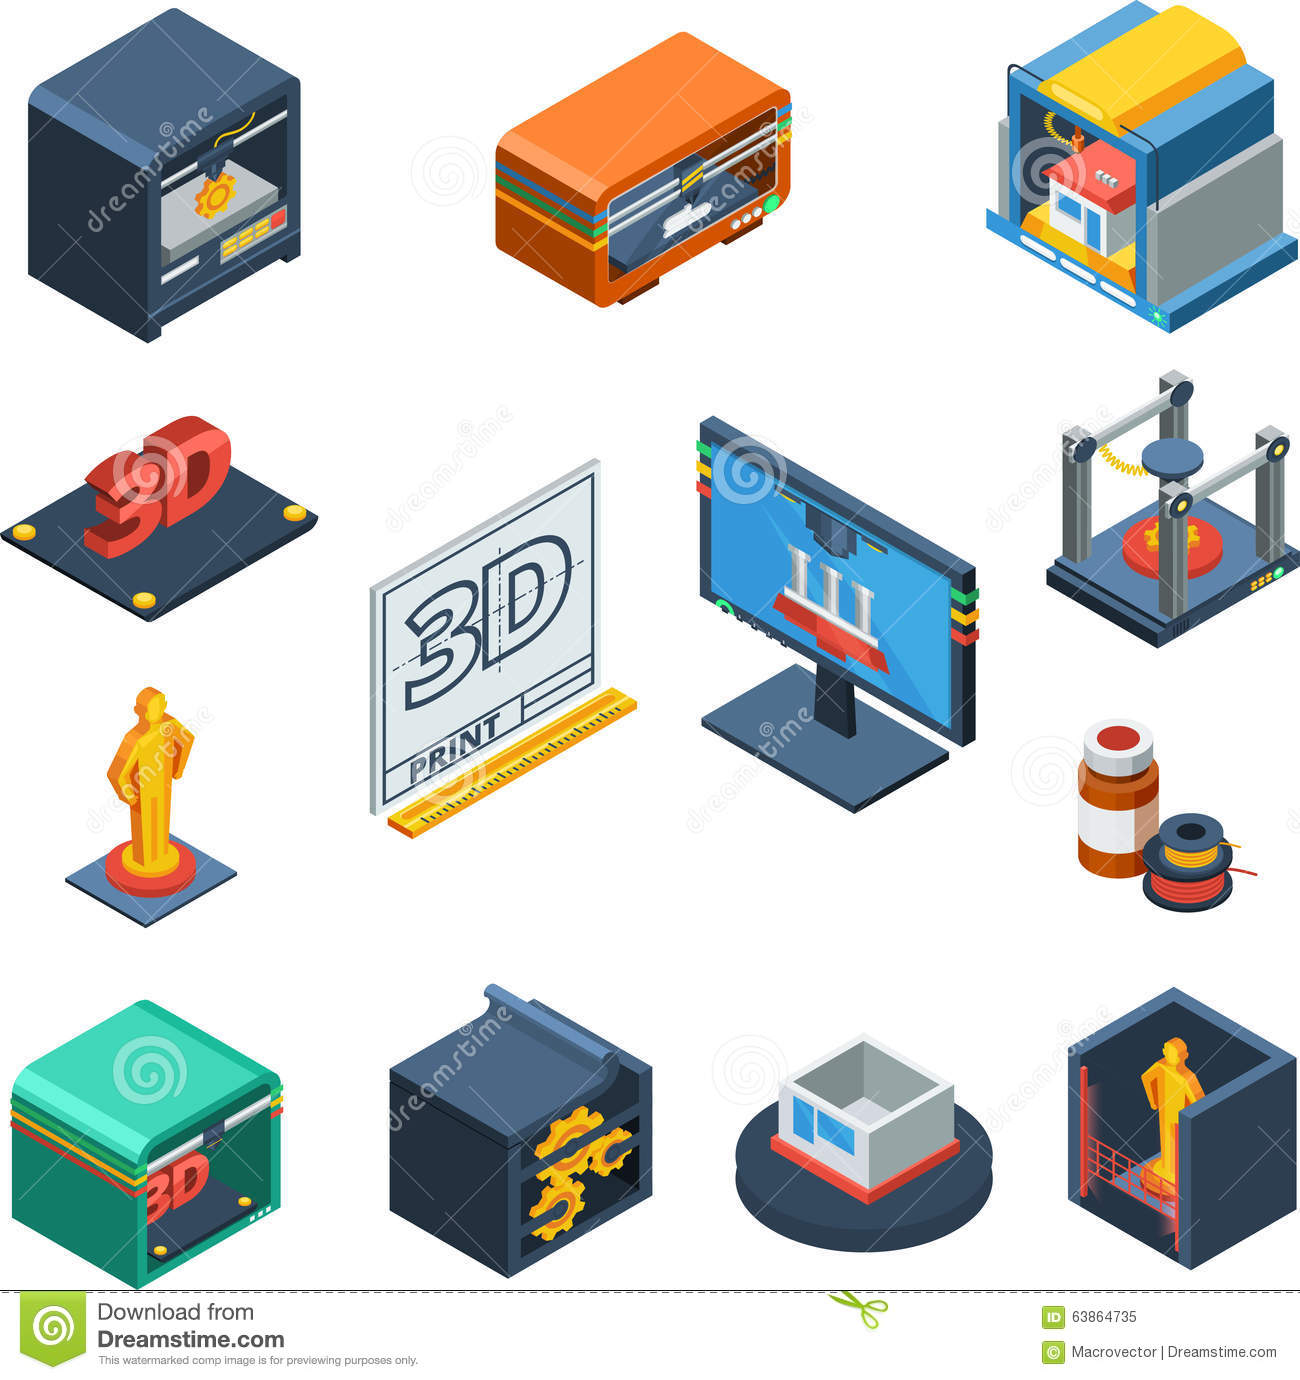 Stock Illustration D Printing Isometric Icons Collection Technological Process Isomeric Software Prototype Scanning Object Manufacturing Image63864735 besides 3D Printed Electric Car Hit Market 7 500 moreover 3d Printing London further Laser additive manufacturing going mainstream besides Mfa. on 3d car manufacturing